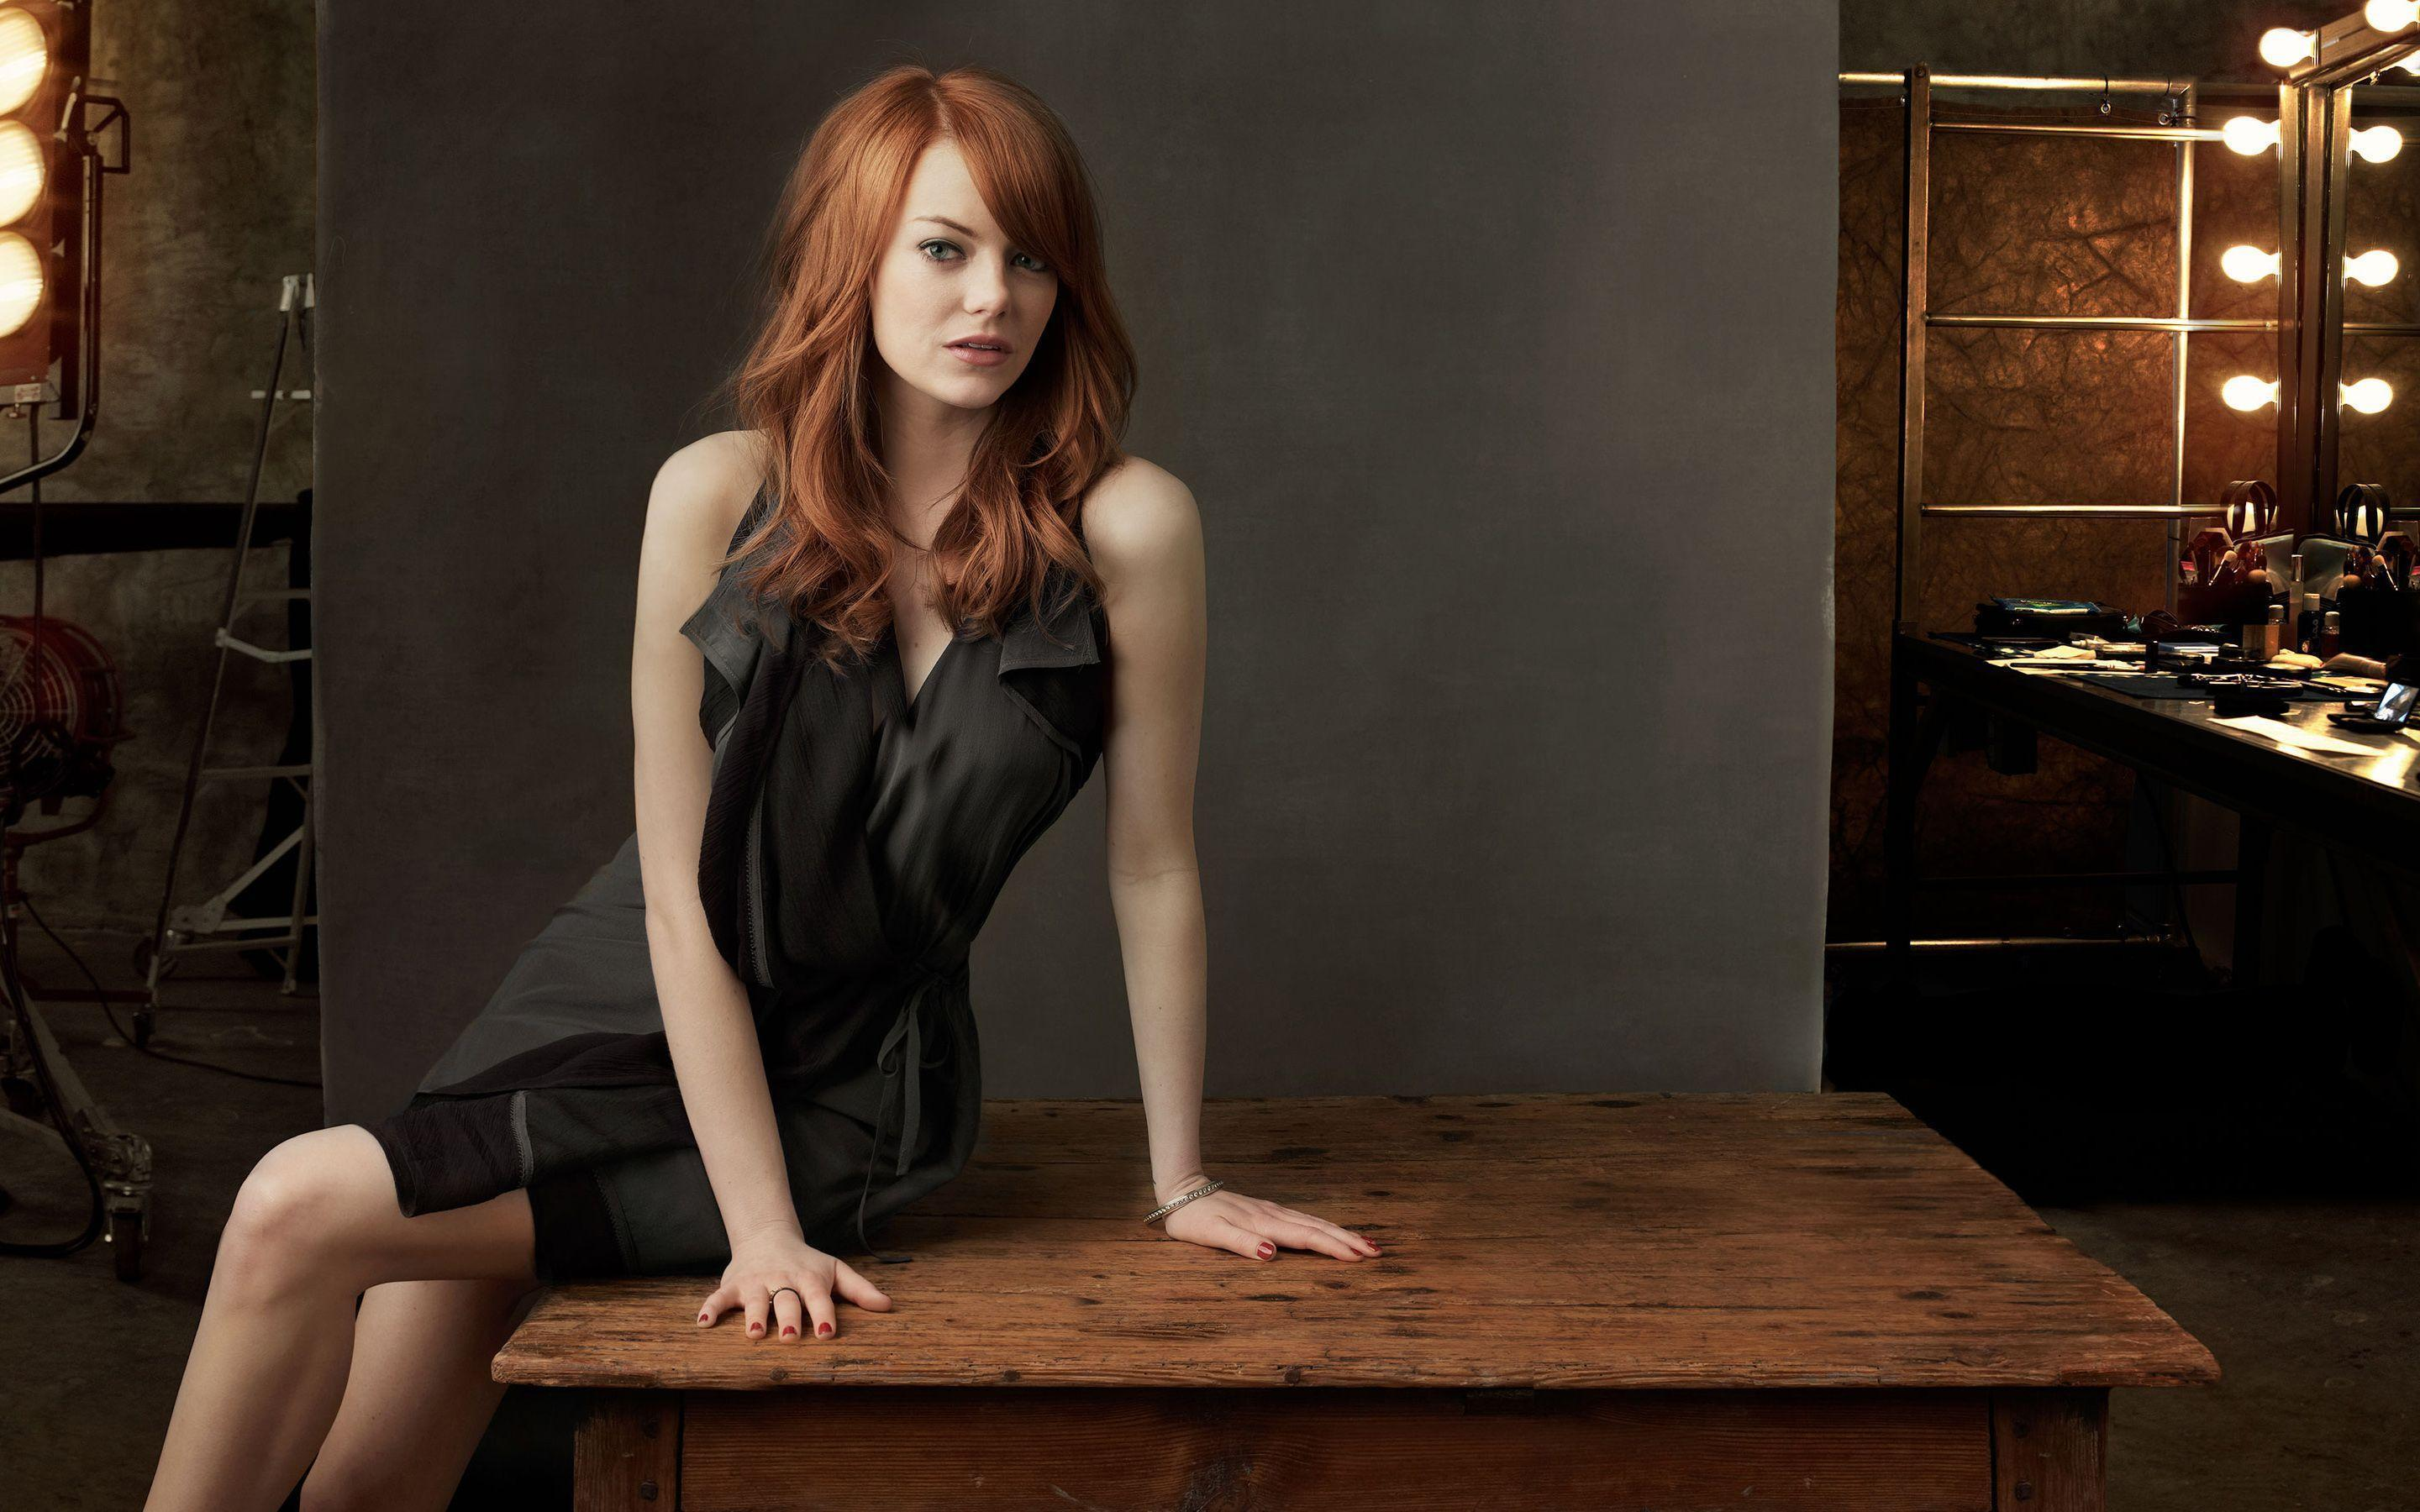 Emma Stone Wallpapers - Page 1 - HD Wallpapers